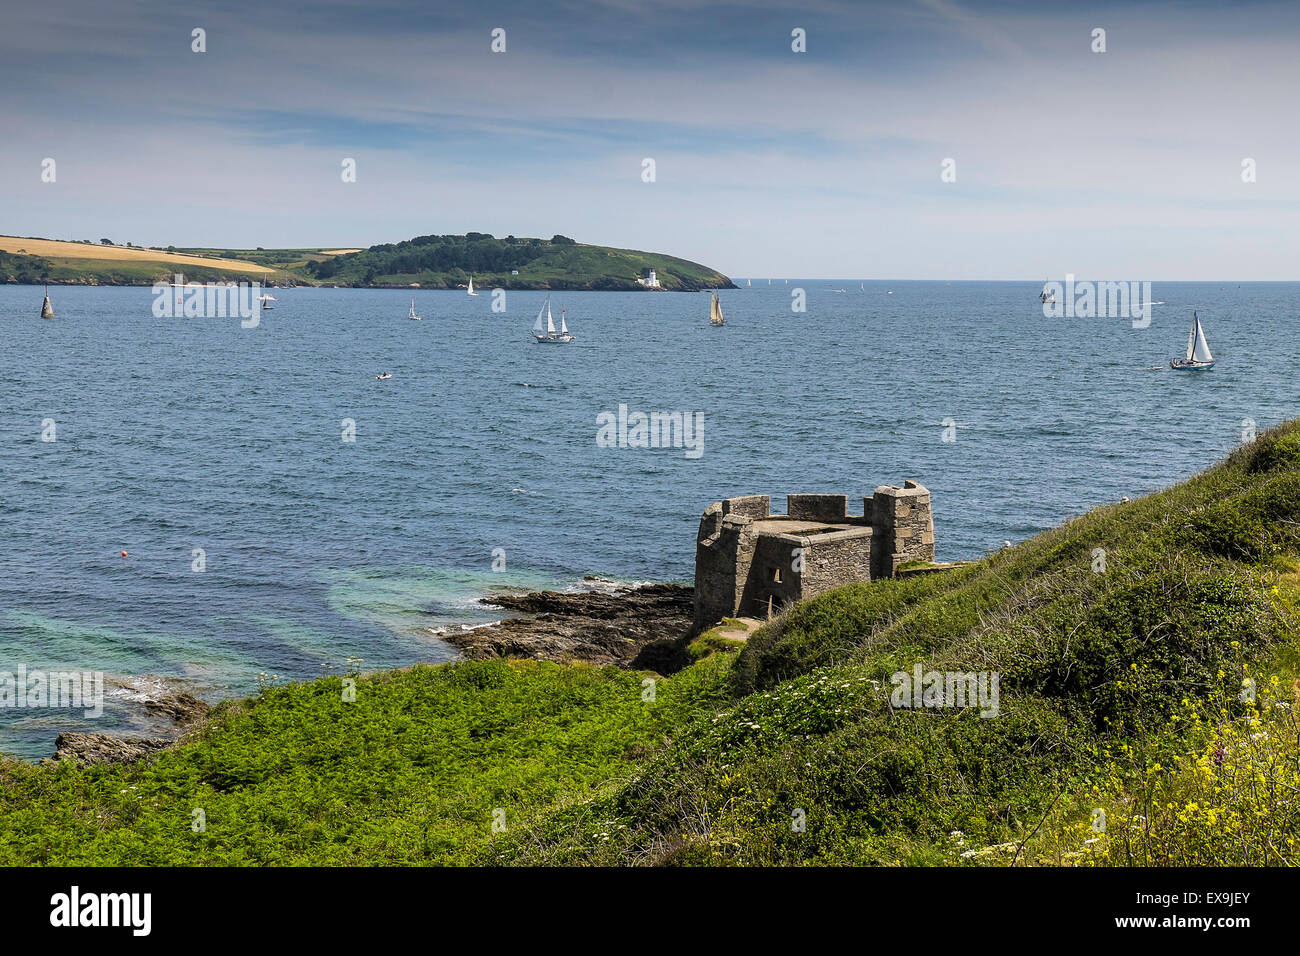 The entrance to the Carrick Roads at Falmouth, Cornwall. - Stock Image